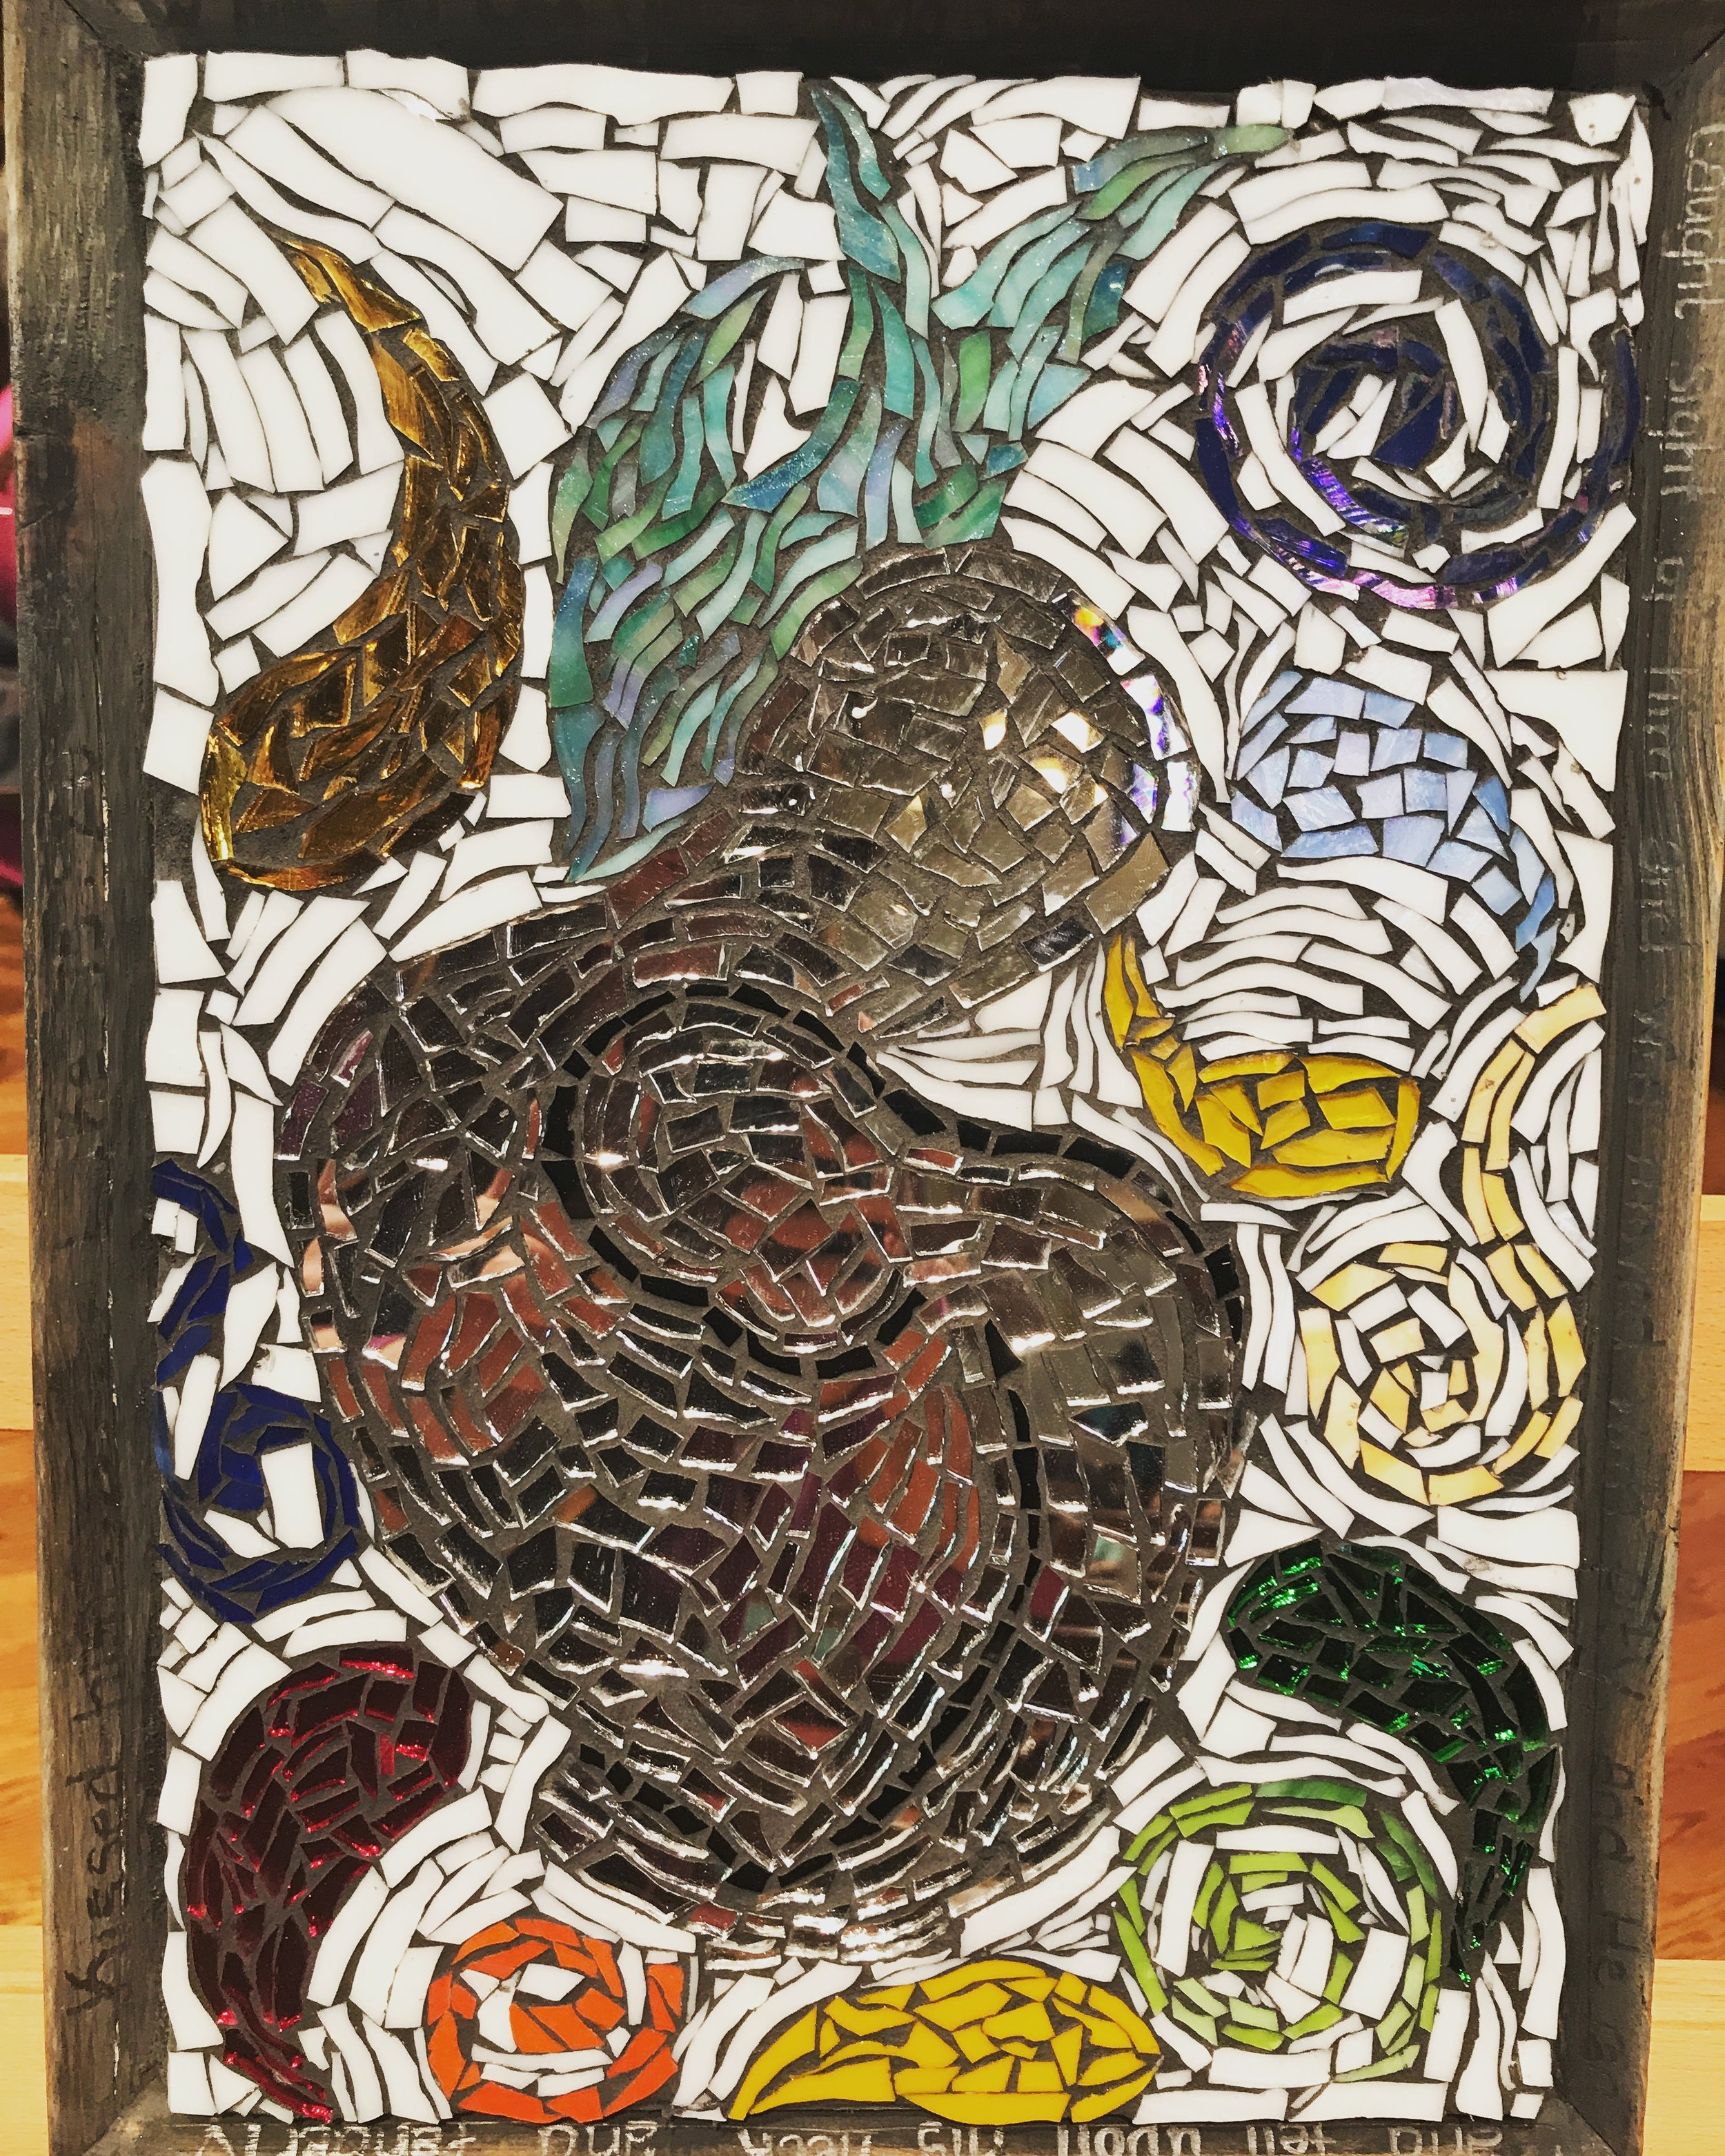 A mosaic created by Jamie Hutchinson, a member of the Creative Vision Factory and our Artist's Way Creative Cluster at Grace Church.